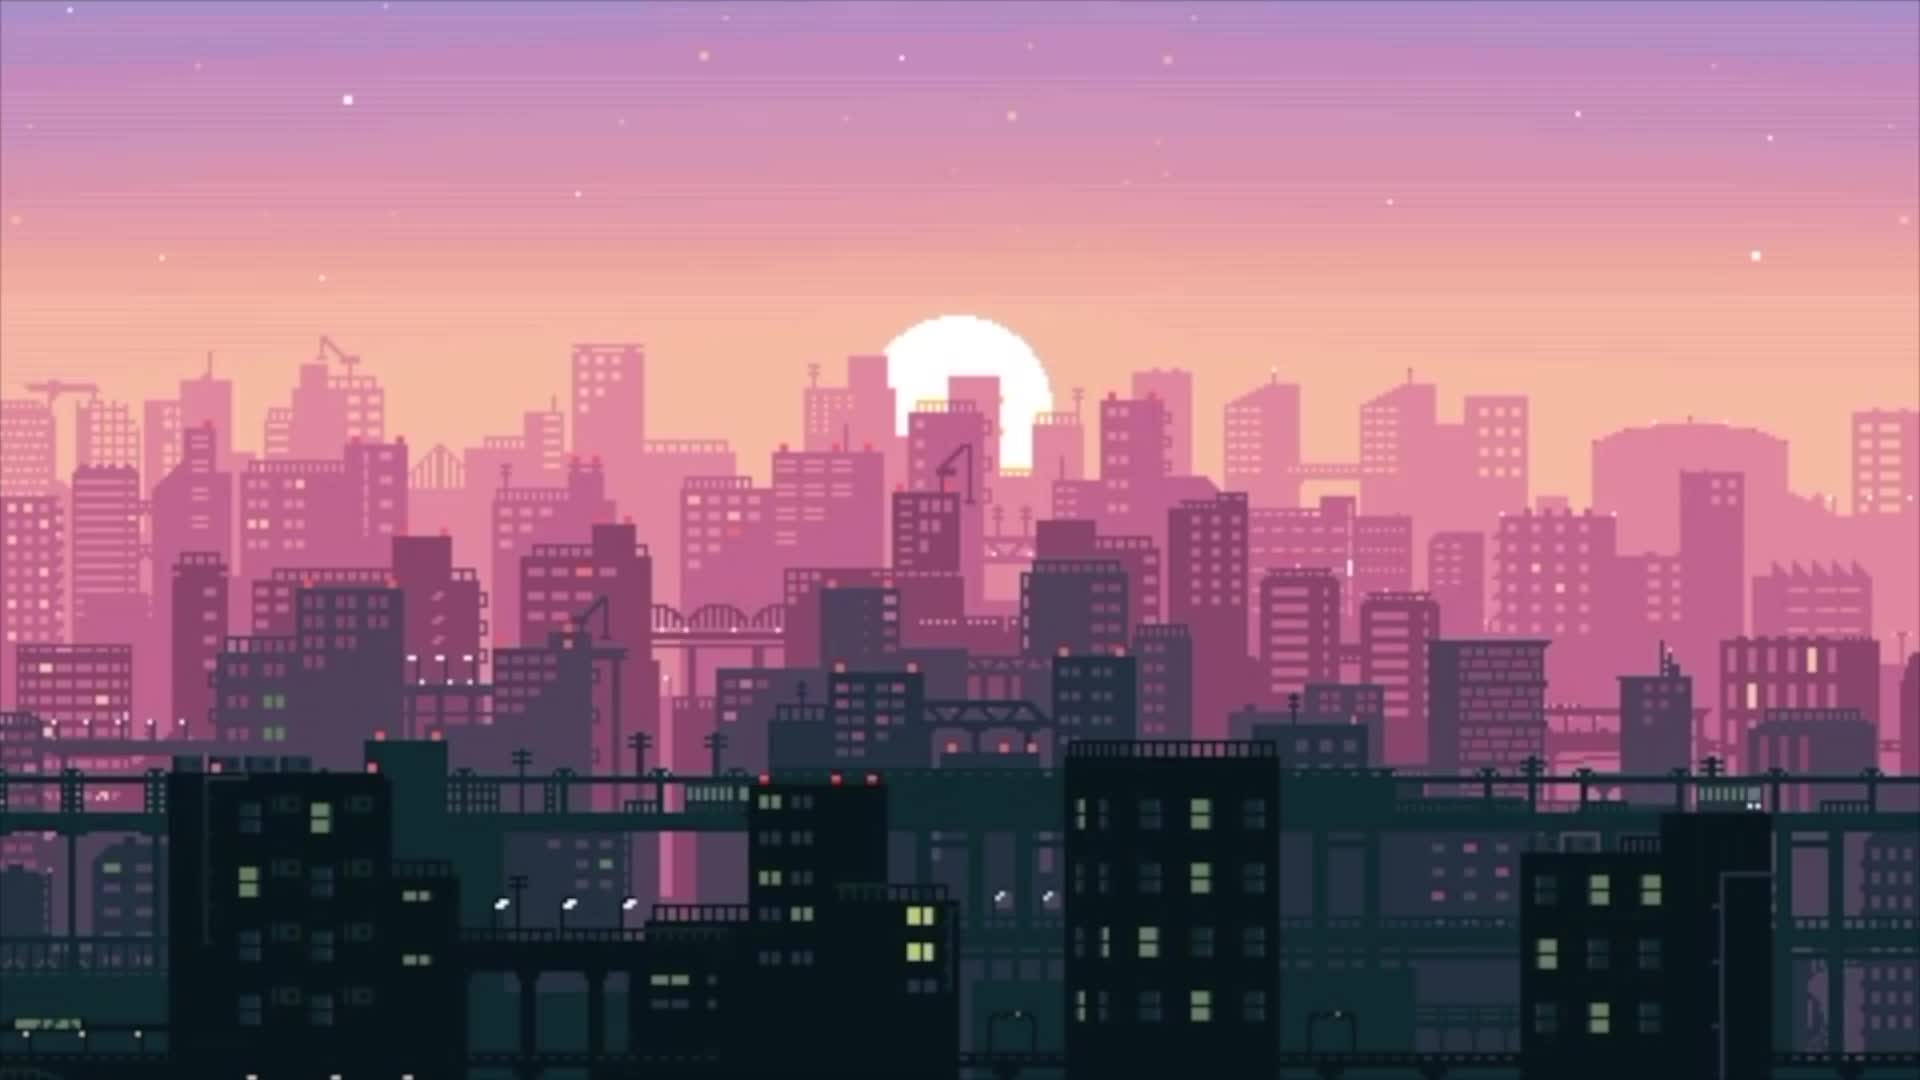 1920x1080 Lofi Aesthetic Wallpapers Wallpaper Cave